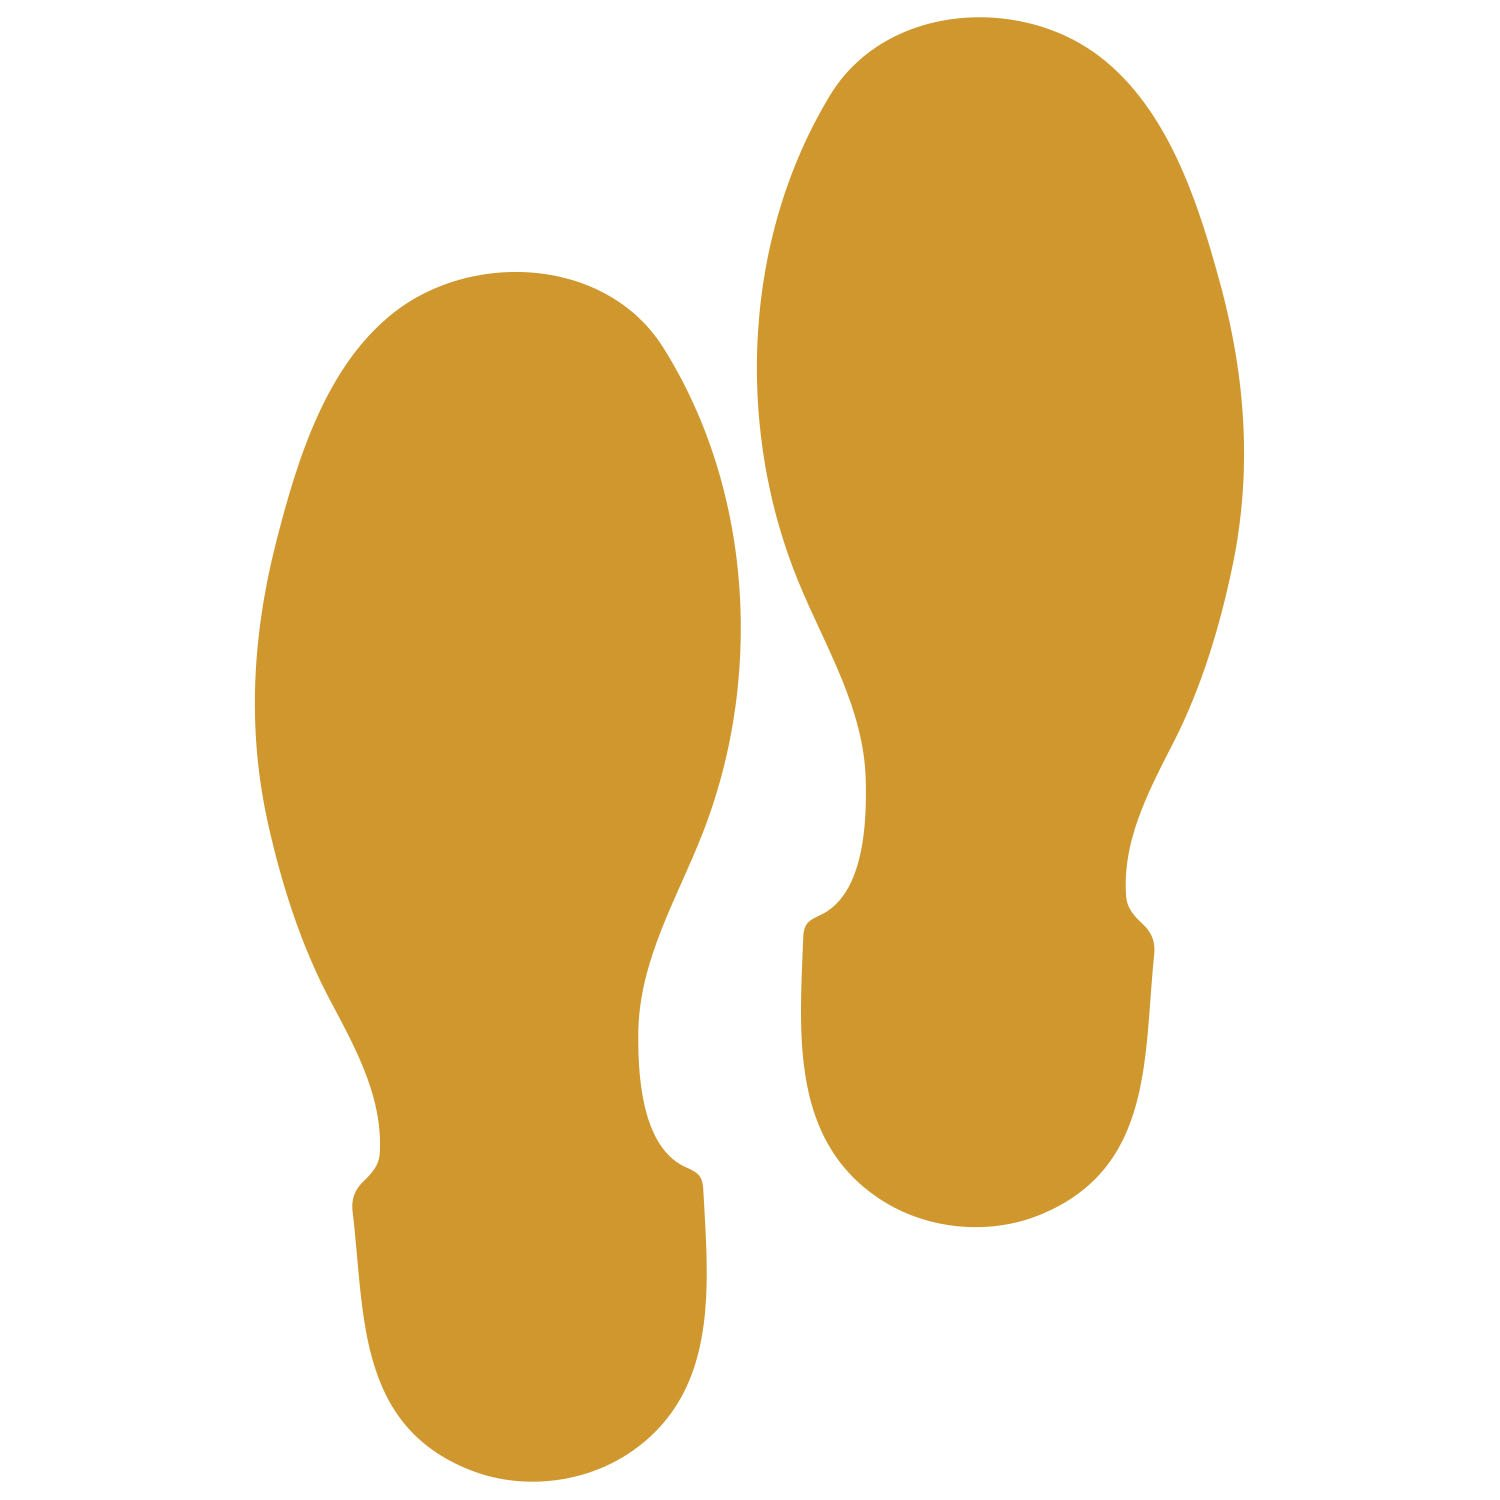 LiteMark 9 Inch Gold Shoe Print Decal Stickers for Floors and Walls - Pack of 12 (6 Pairs)